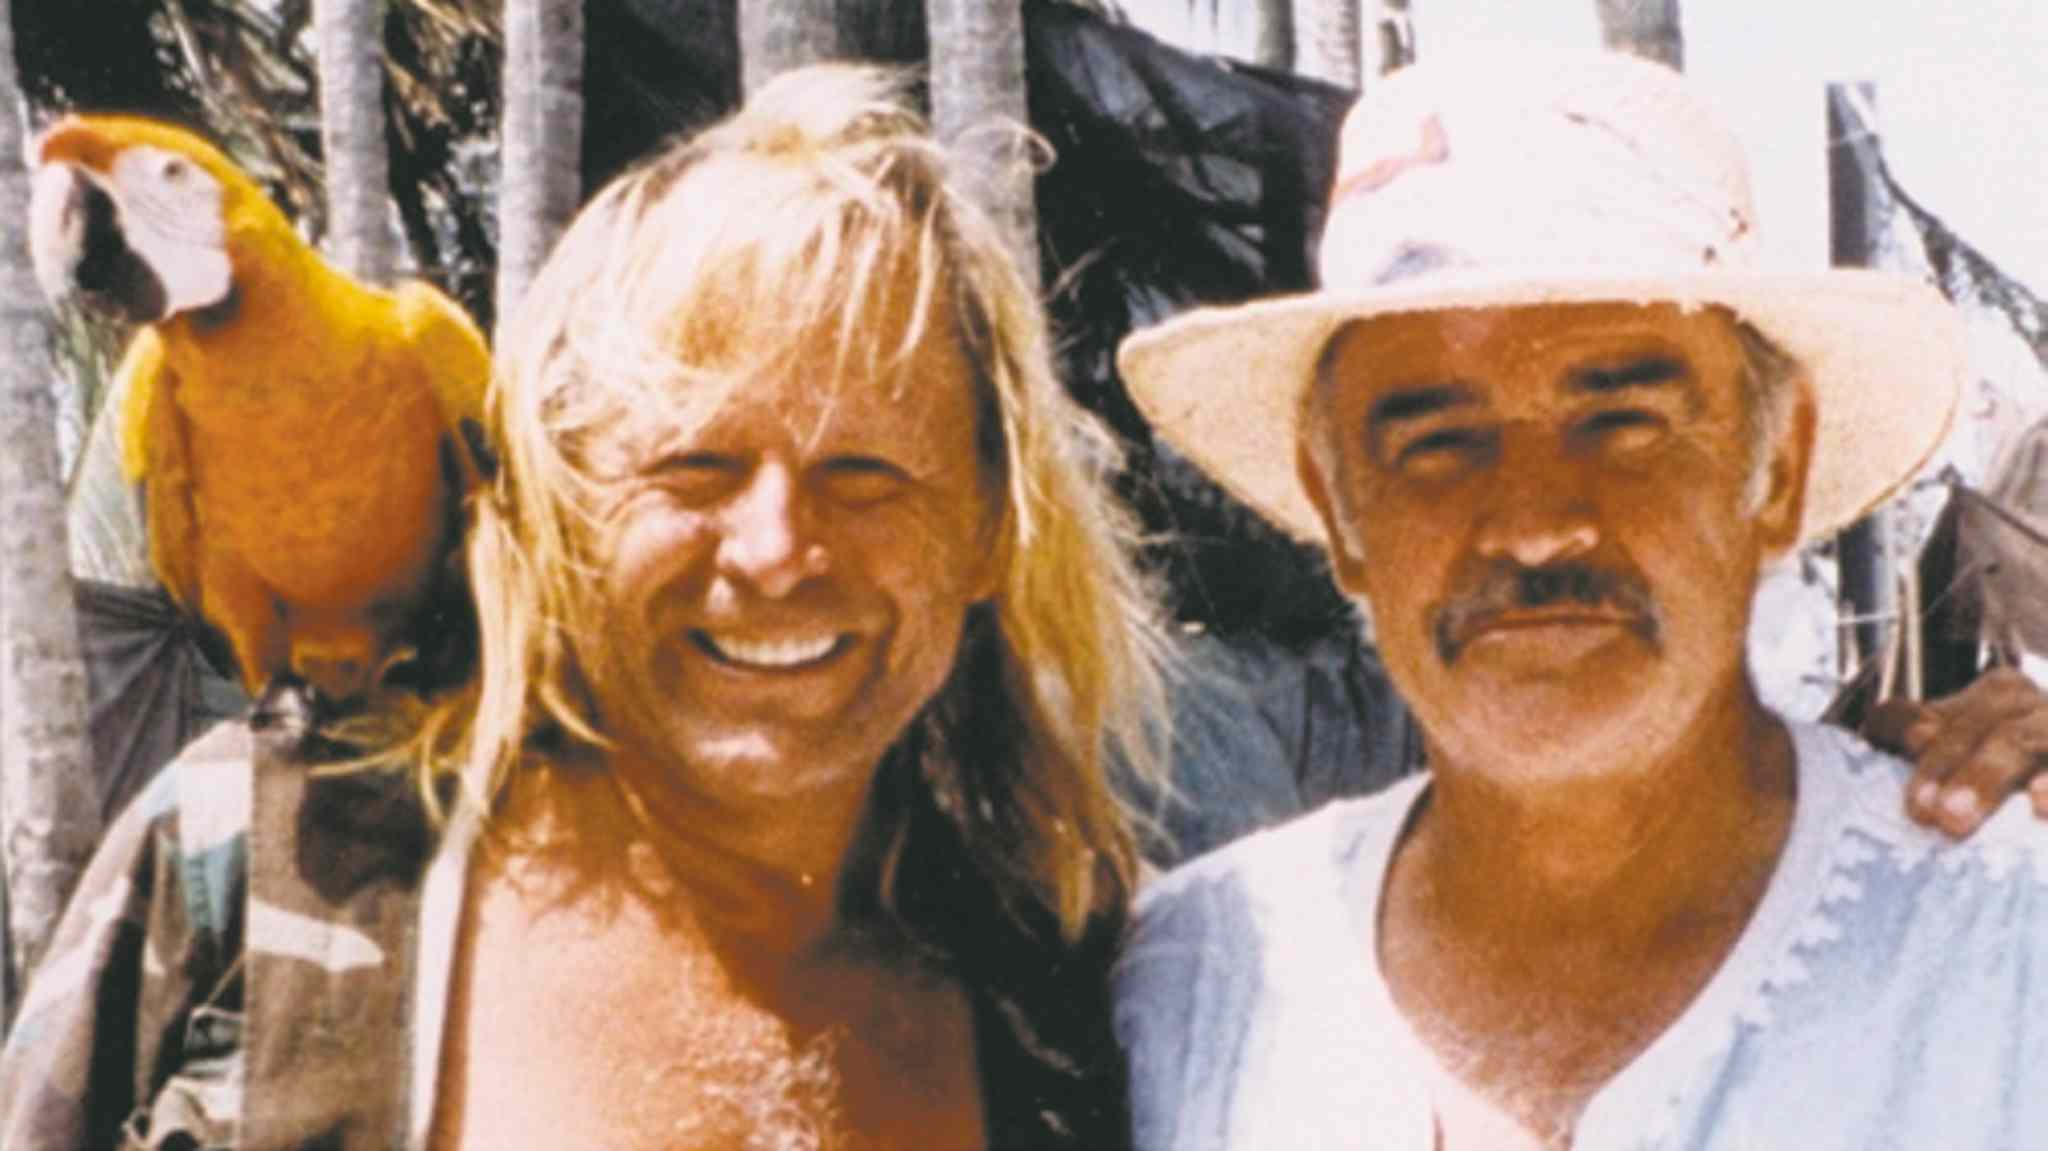 Peter Nygård with actor Sean Connery, part of a group of celebrity landowners suing the Bahamian government.